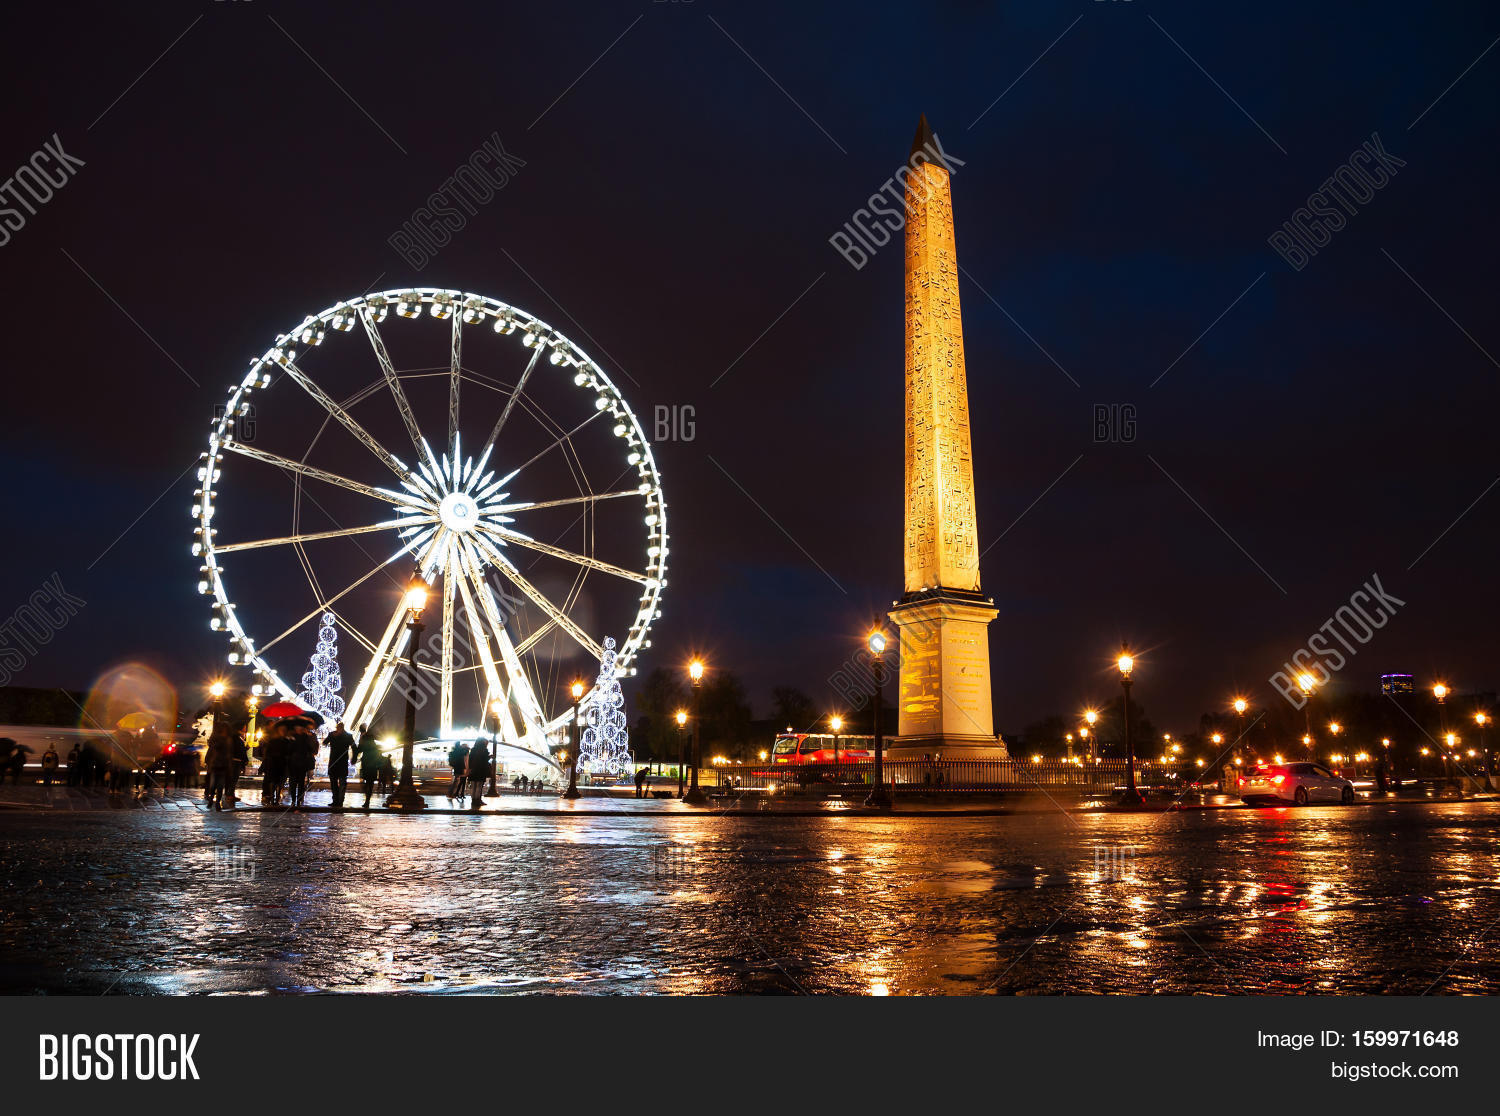 Christmas Paris France.Christmas Paris France Image Photo Free Trial Bigstock